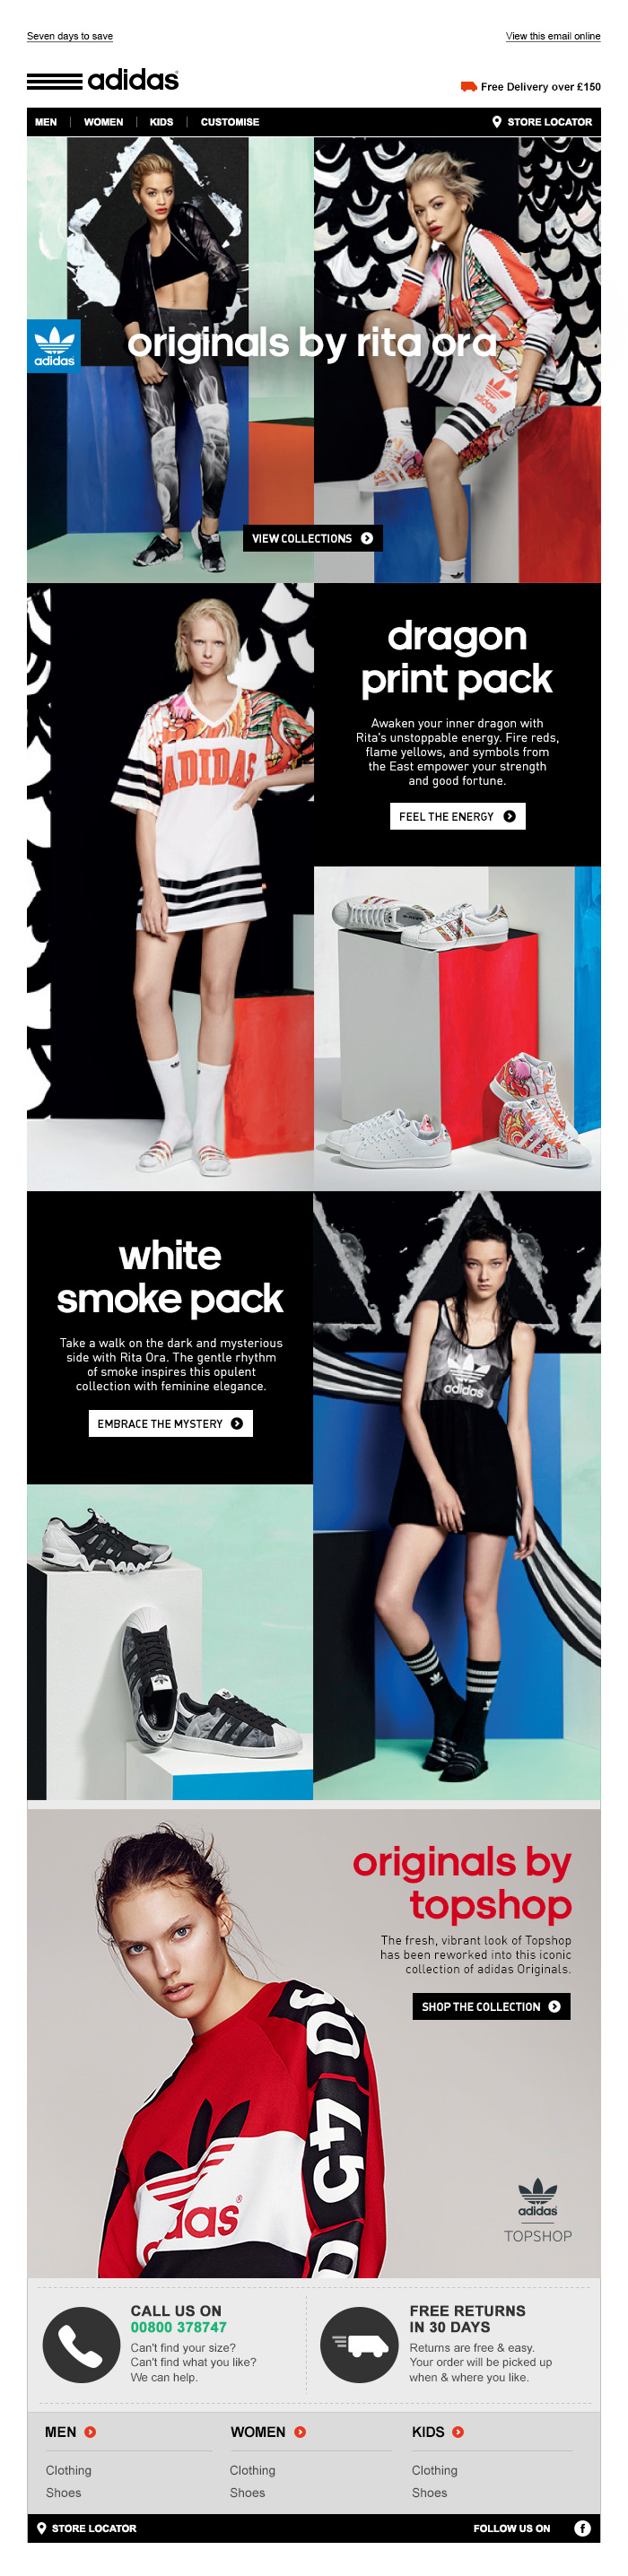 adidas Originals Rita Ora Dragon White Smoke - Tim Tayyar, freelance copywriter